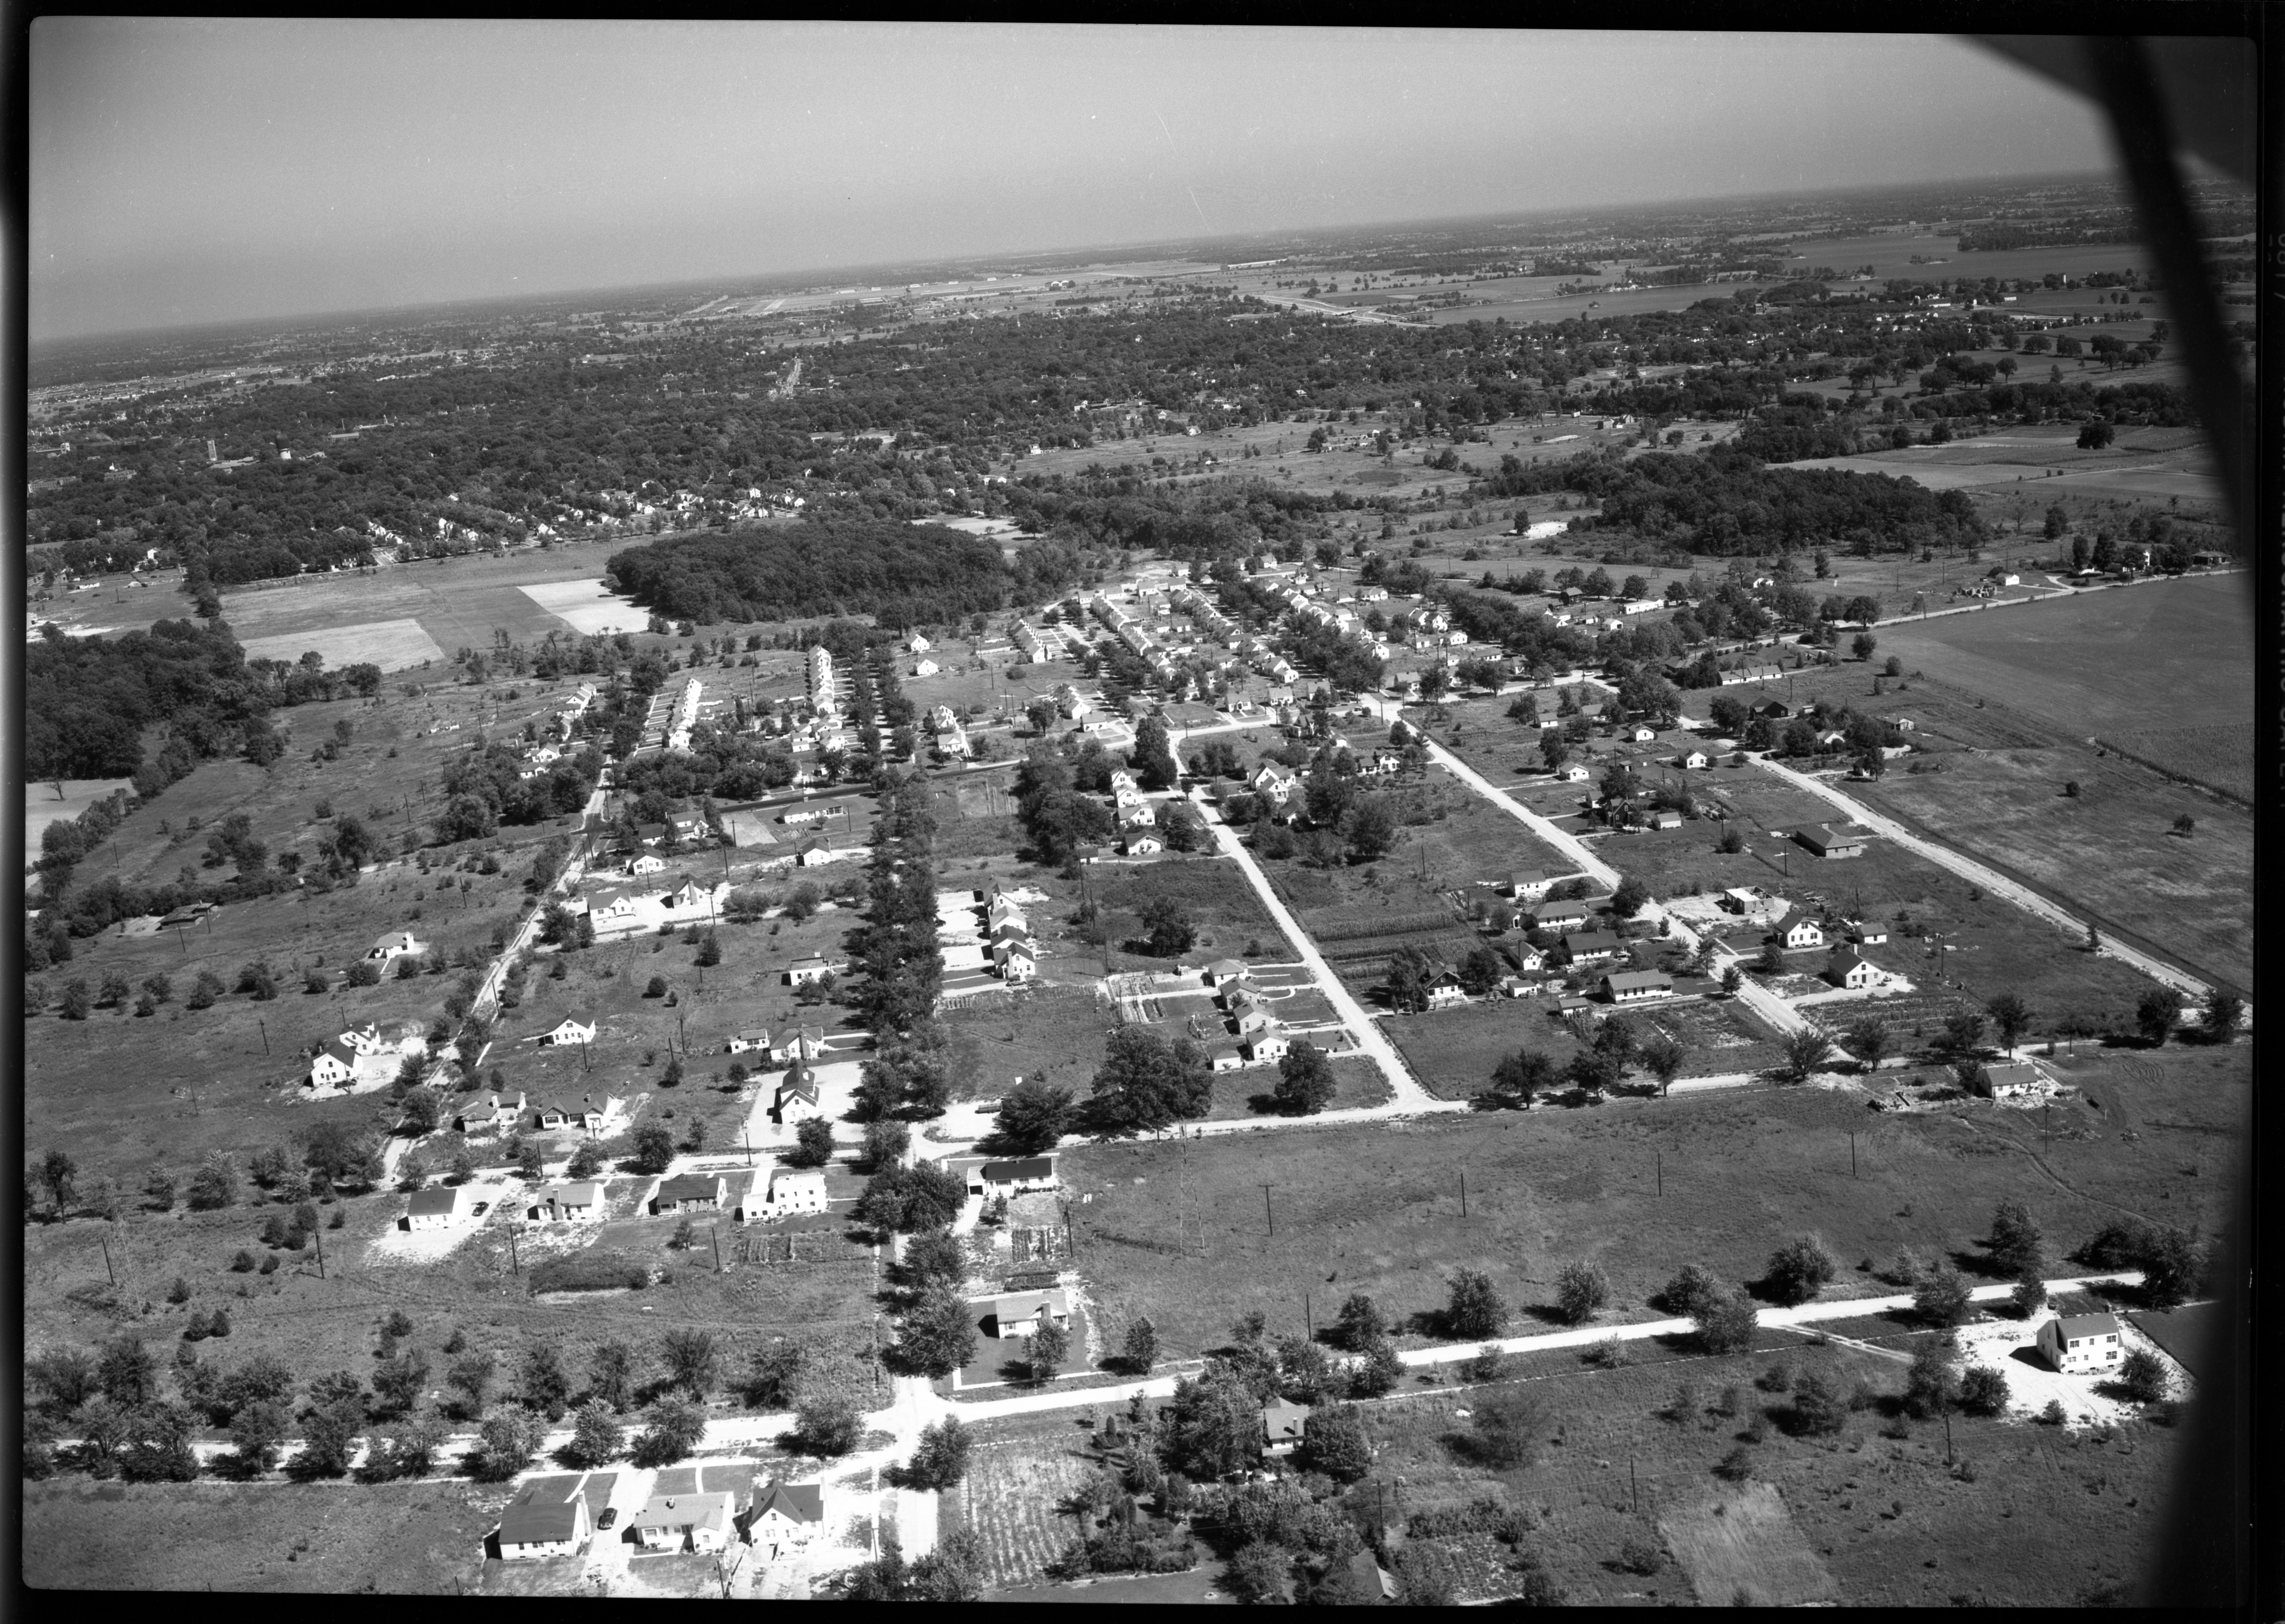 Aerial Photograph of New Housing Developments in Ypsilanti, September 1949 image